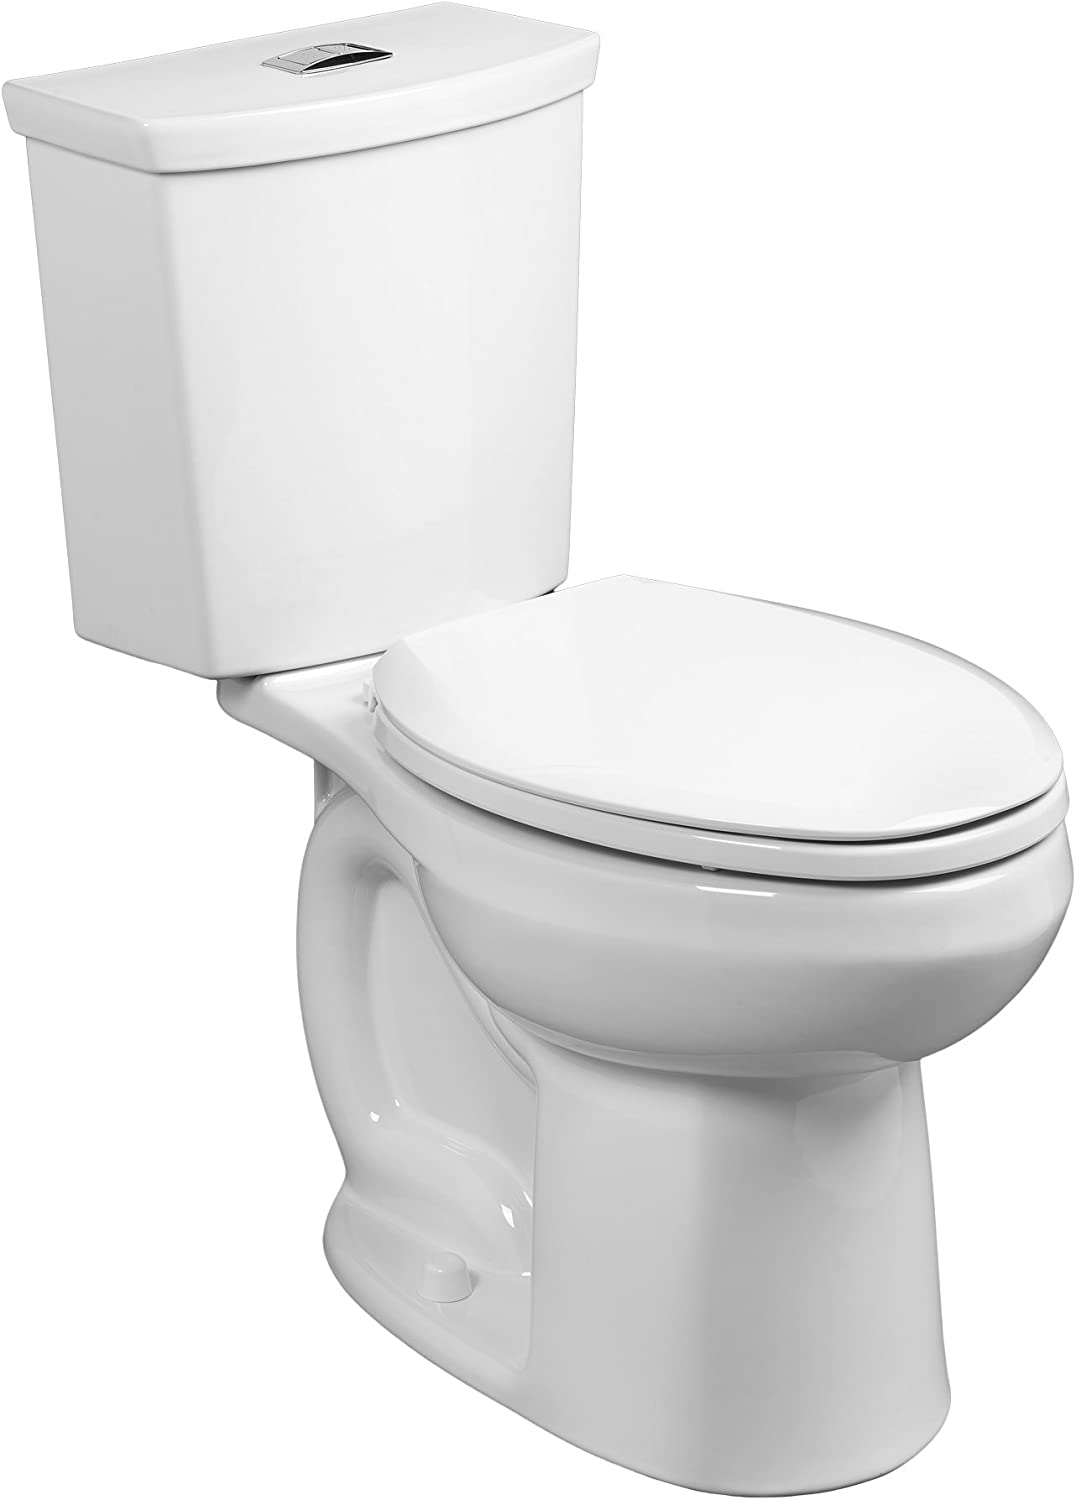 American Standard 2886518 020 H2 Option Siphonic Dual Flush Right Height Elongated Toilet With Liner White 2 Piece Amazon Com